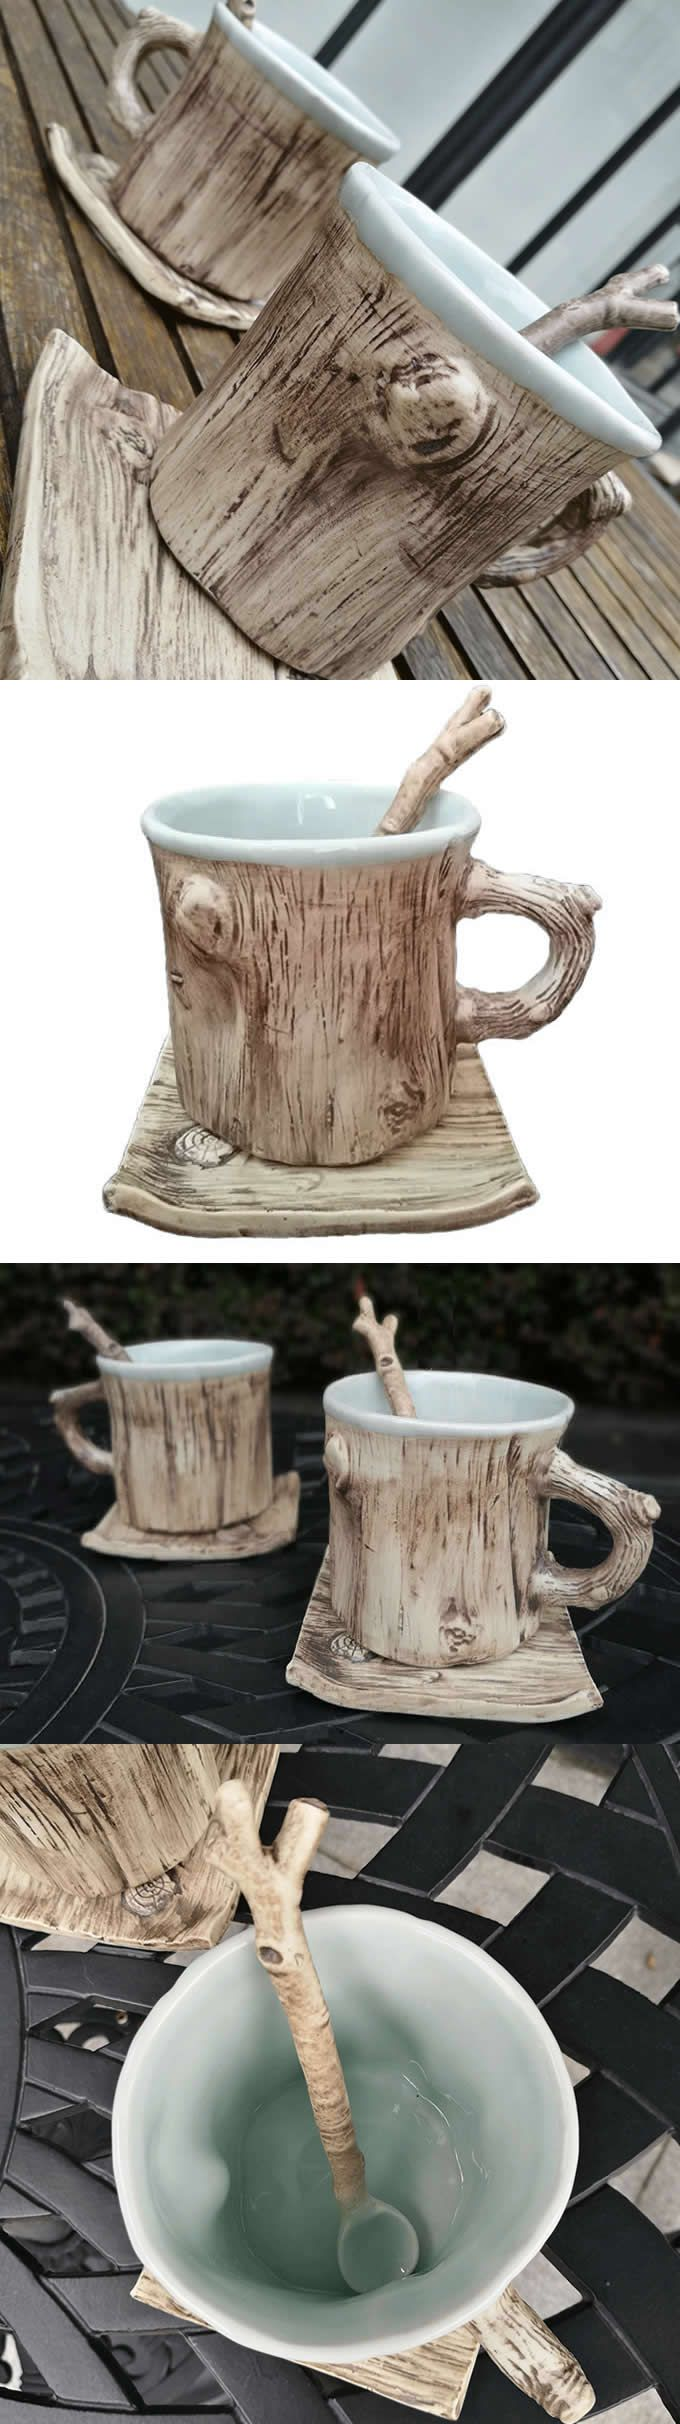 Personalized coffee mugs raleigh nc - Ceramic Tree Bark Coffee Mug With Saucer Looks Like A Tree Trunk